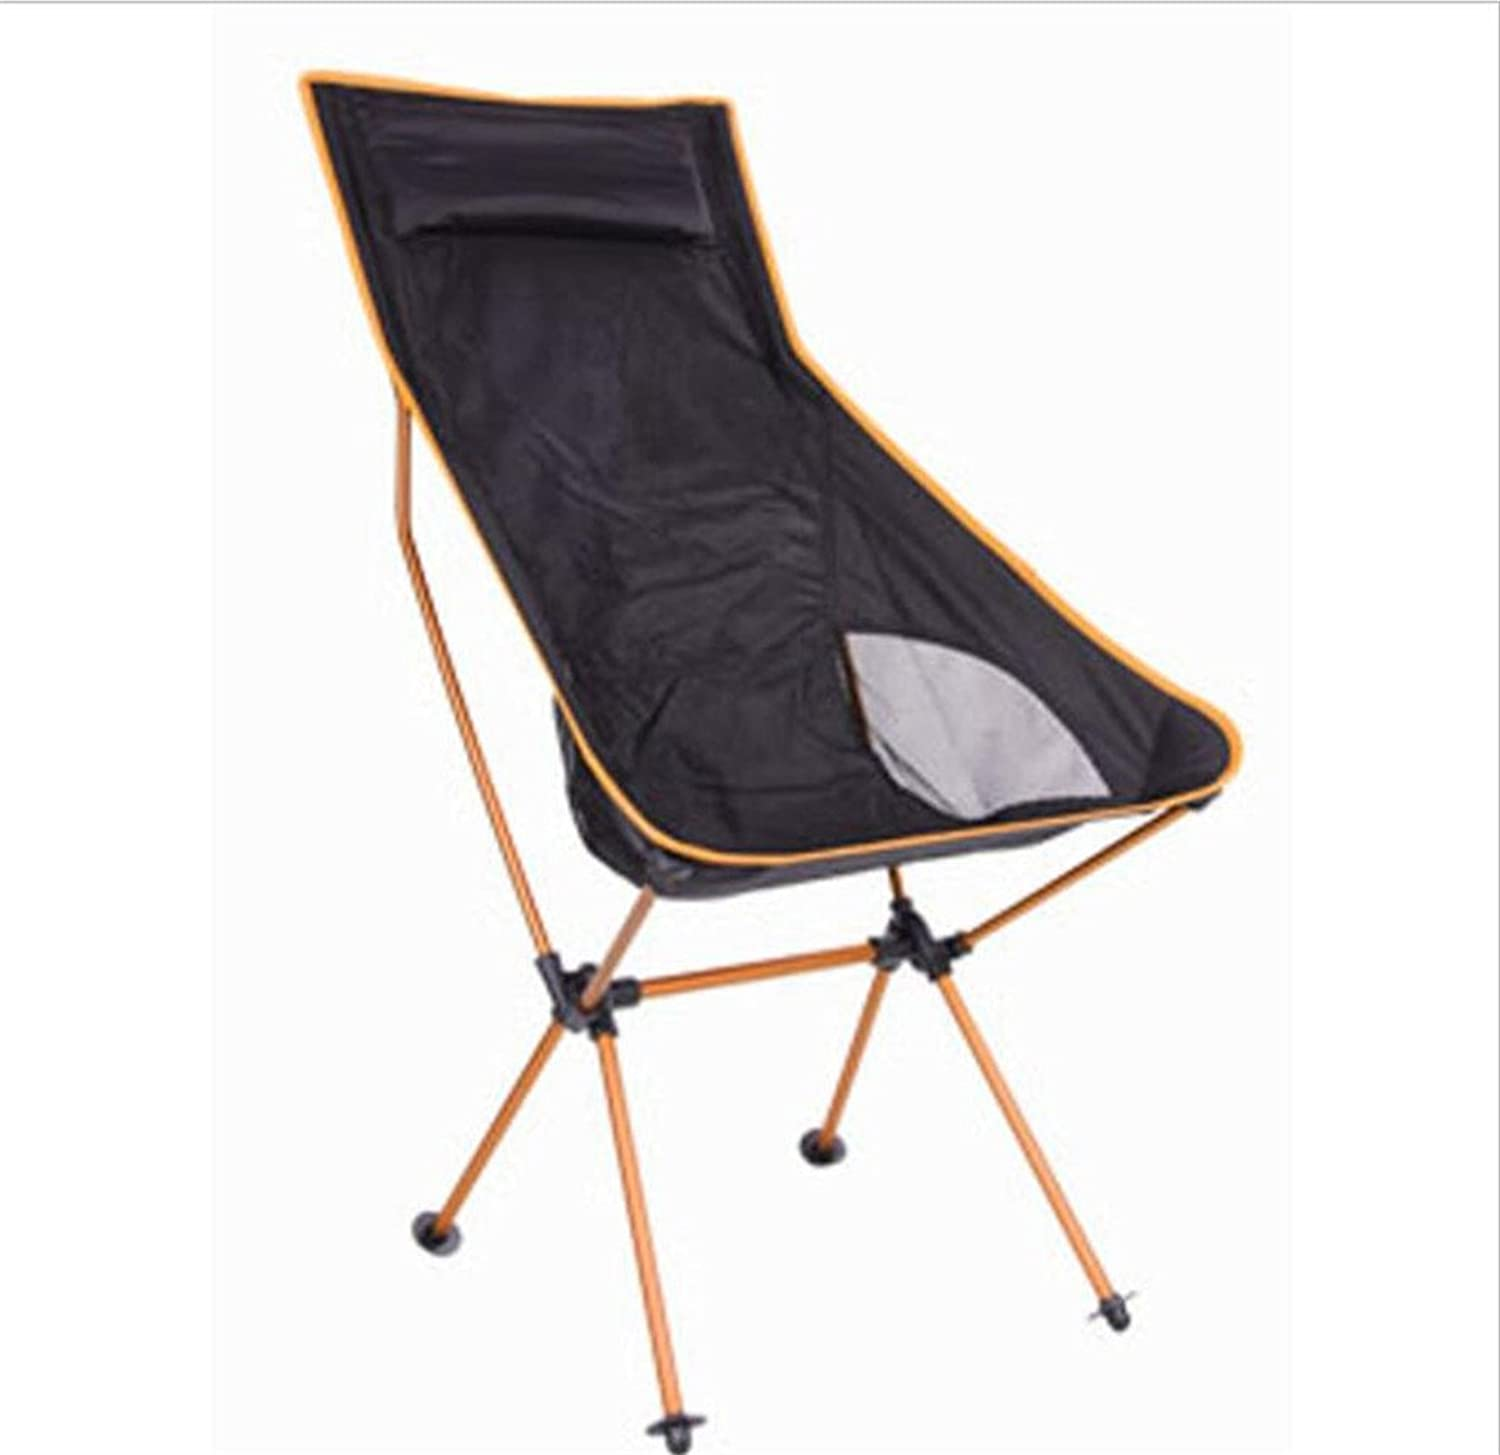 Camping Chair, Compact Ultralight Portable Folding Backpacking Chairs with Carry Bag